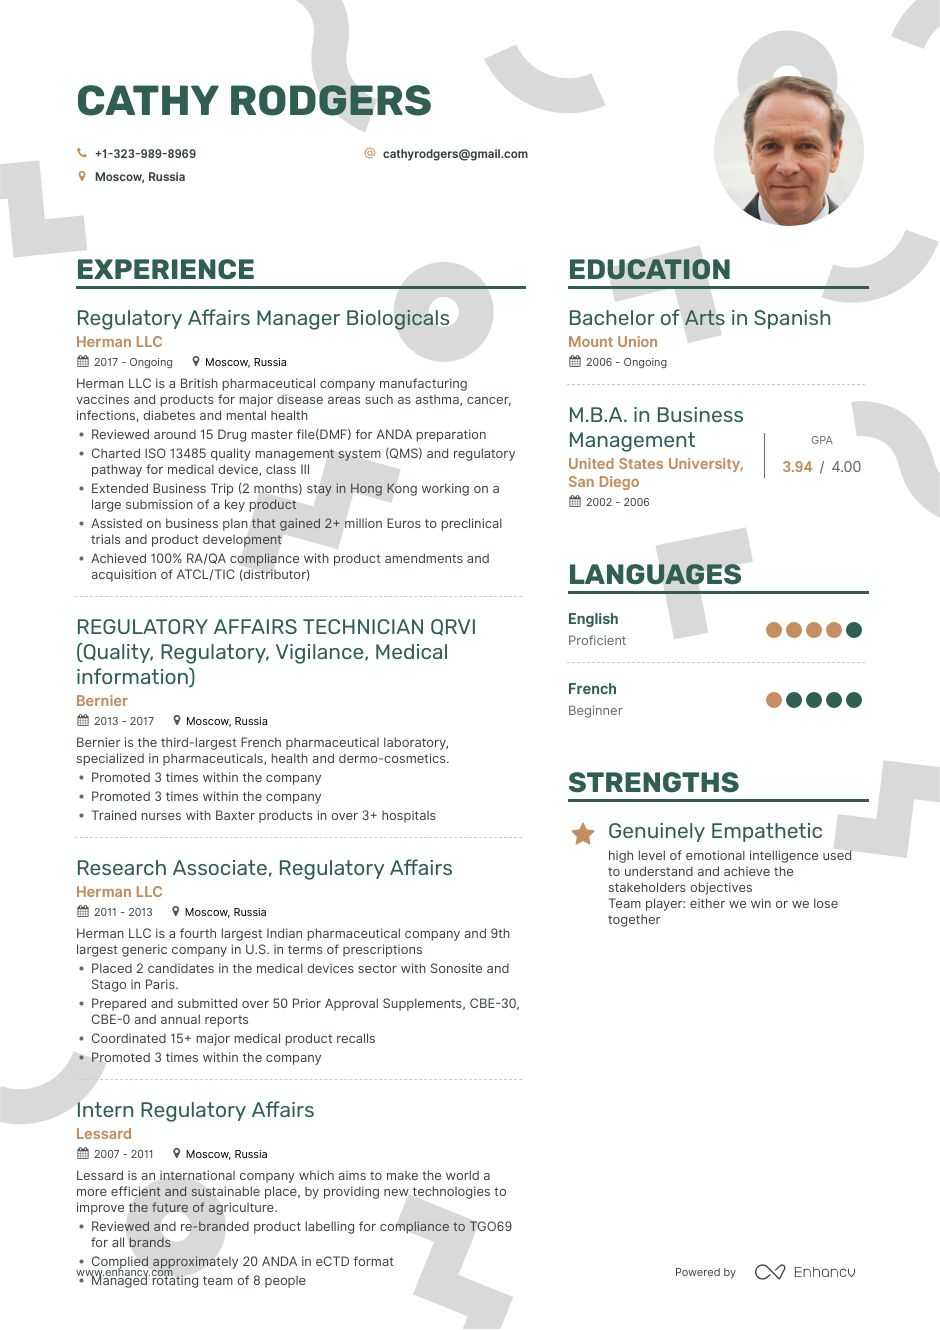 regulatory affairs resume example and guide for 2019